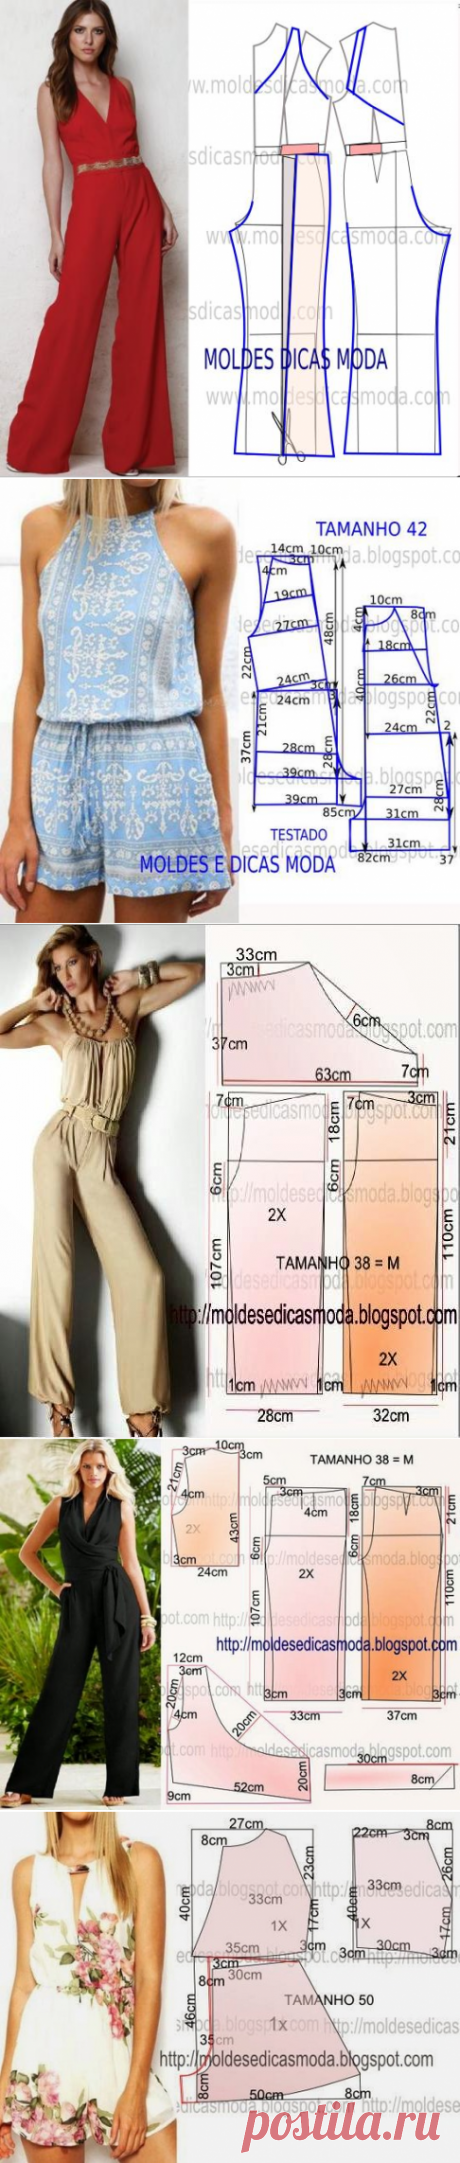 Women's overalls: patterns and description of tailoring   Lady